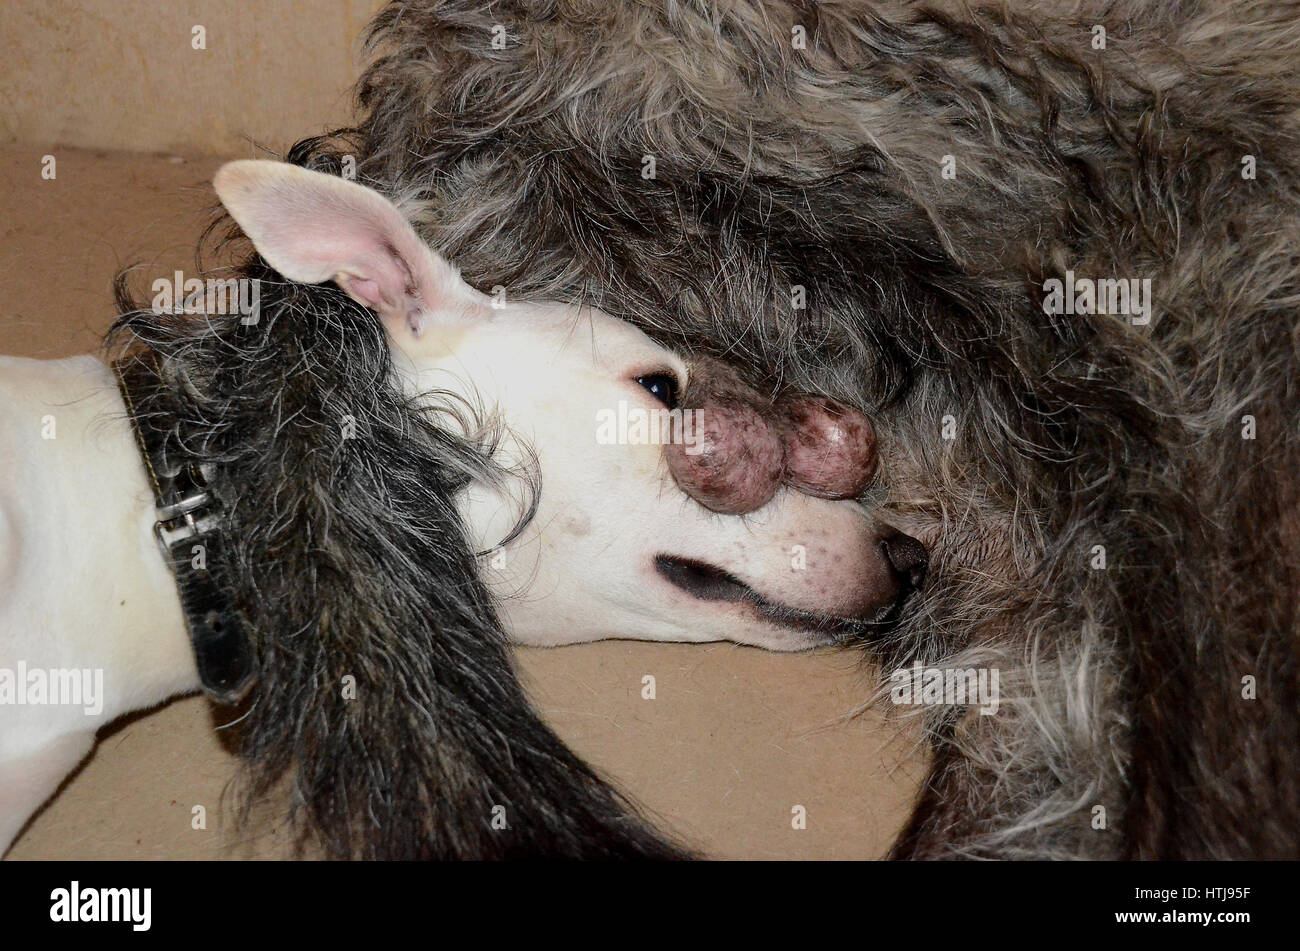 White whippet dog has found a real unusual resting place under the rear of a larger intact male dog. - Stock Image